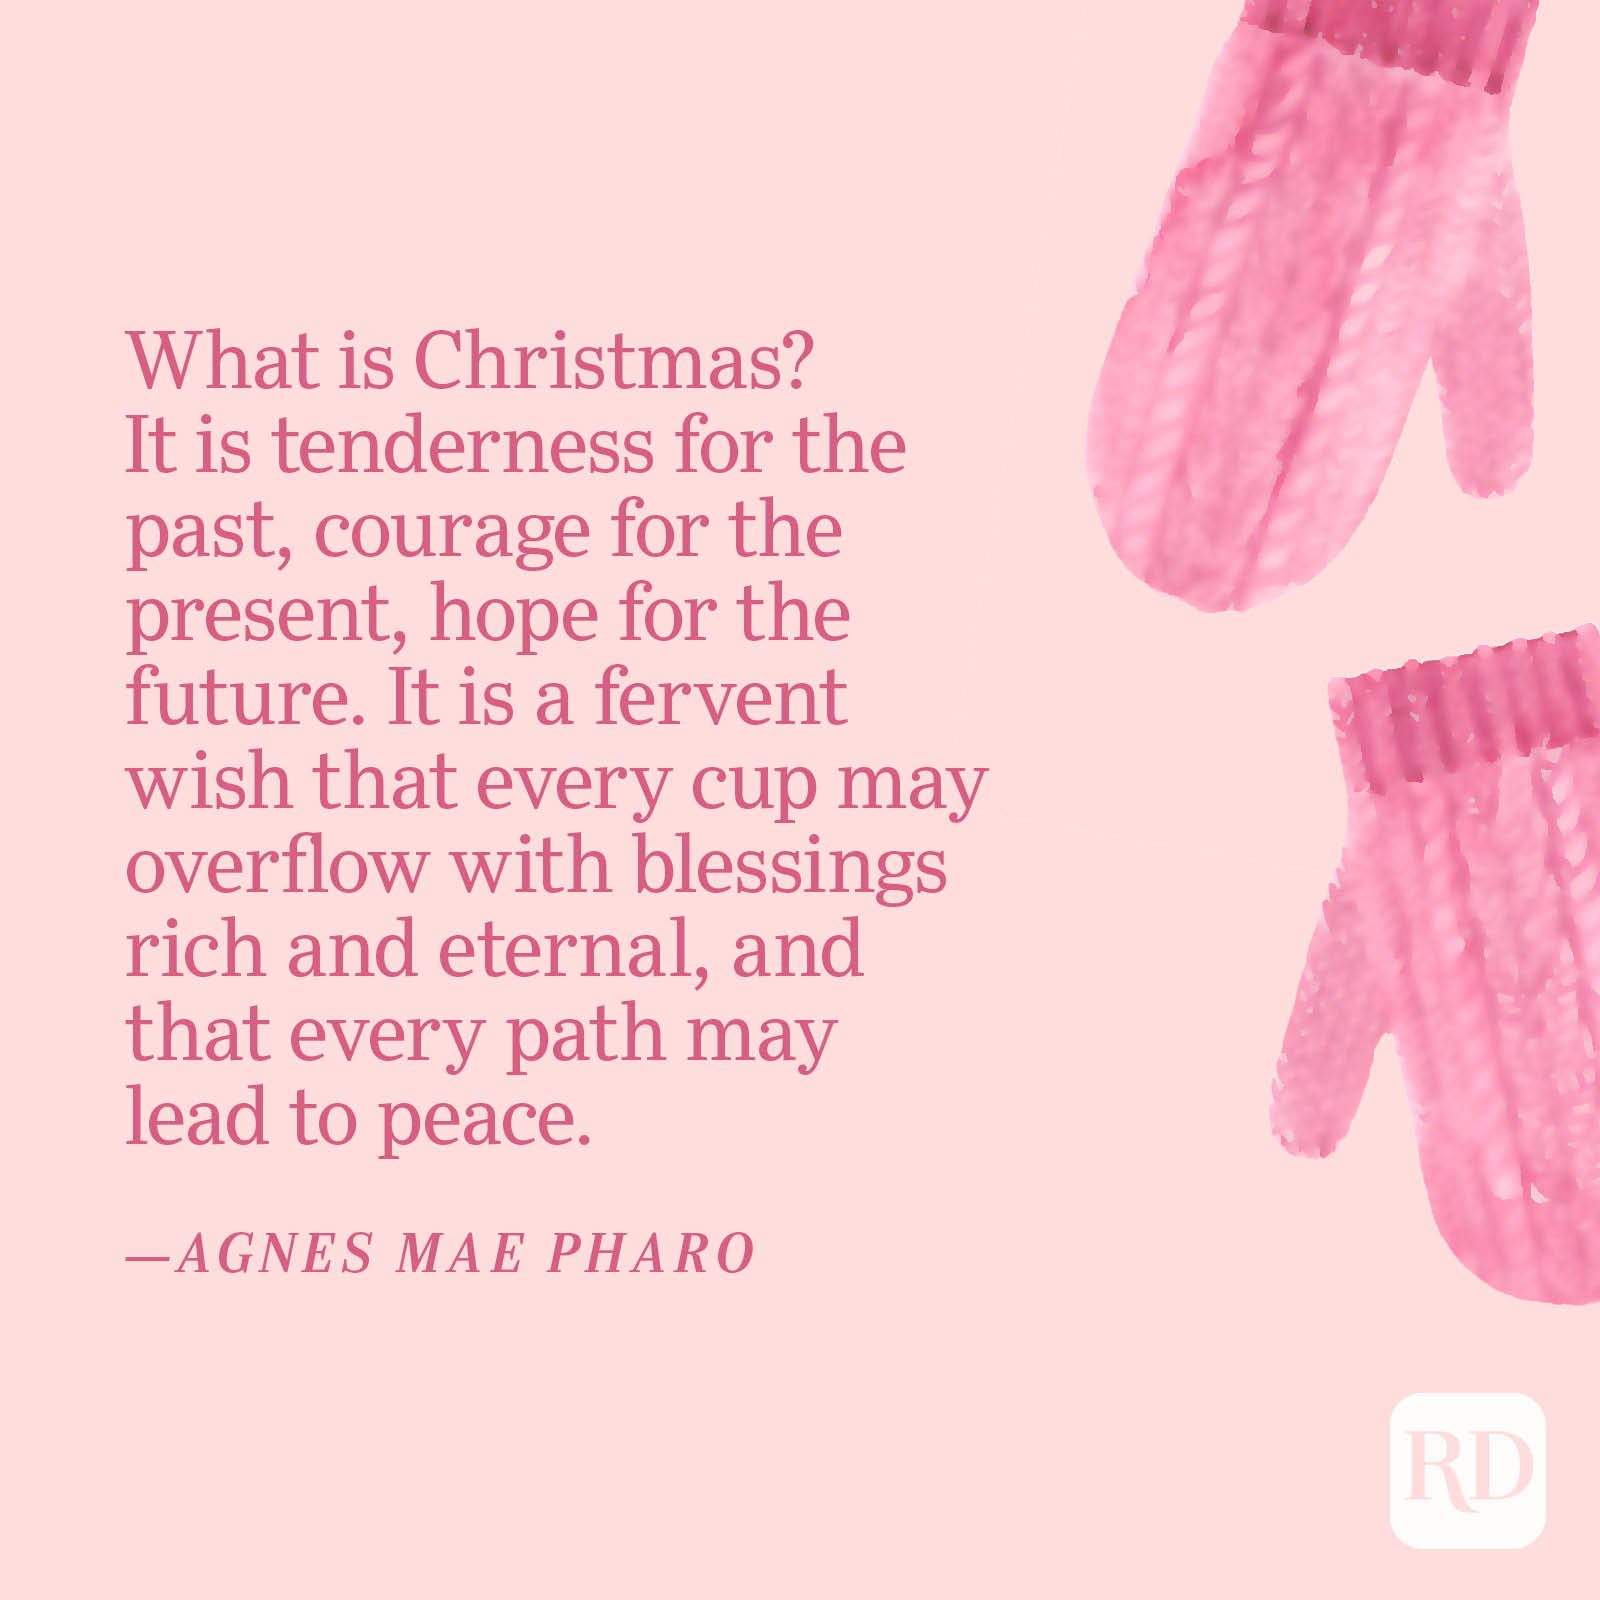 """""""What is Christmas? It is tenderness for the past, courage for the present, hope for the future. It is a fervent wish that every cup may overflow with blessings rich and eternal, and that every path may lead to peace."""" —Agnes Mae Pharo"""